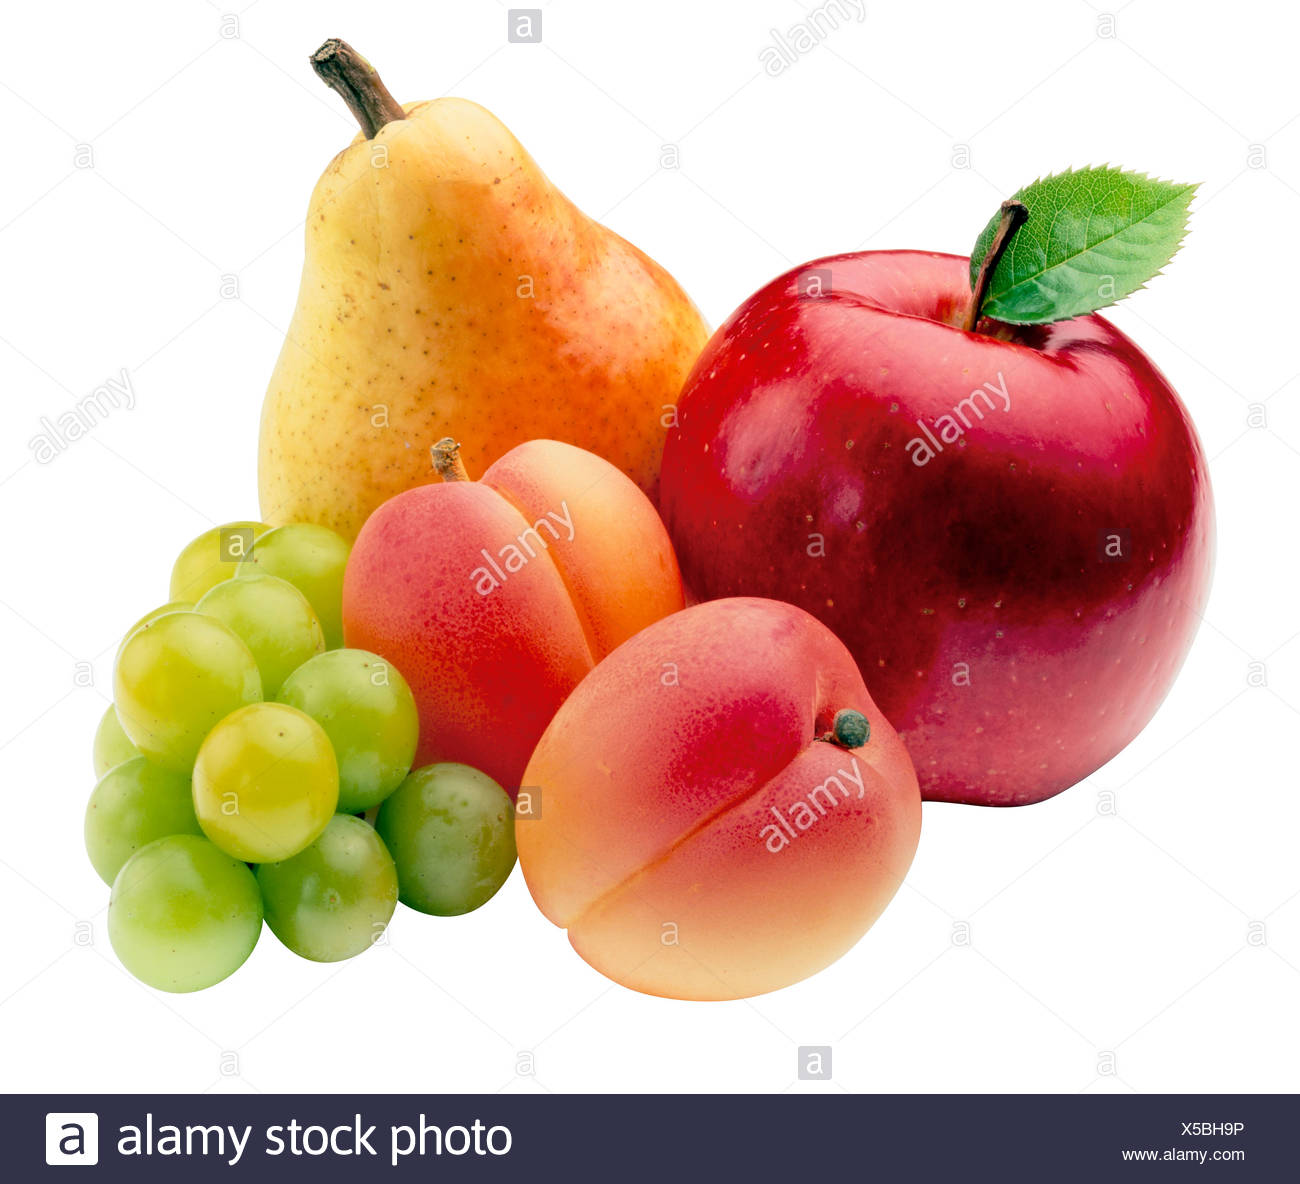 CUT OUT FRESH FRUITS - Stock Image